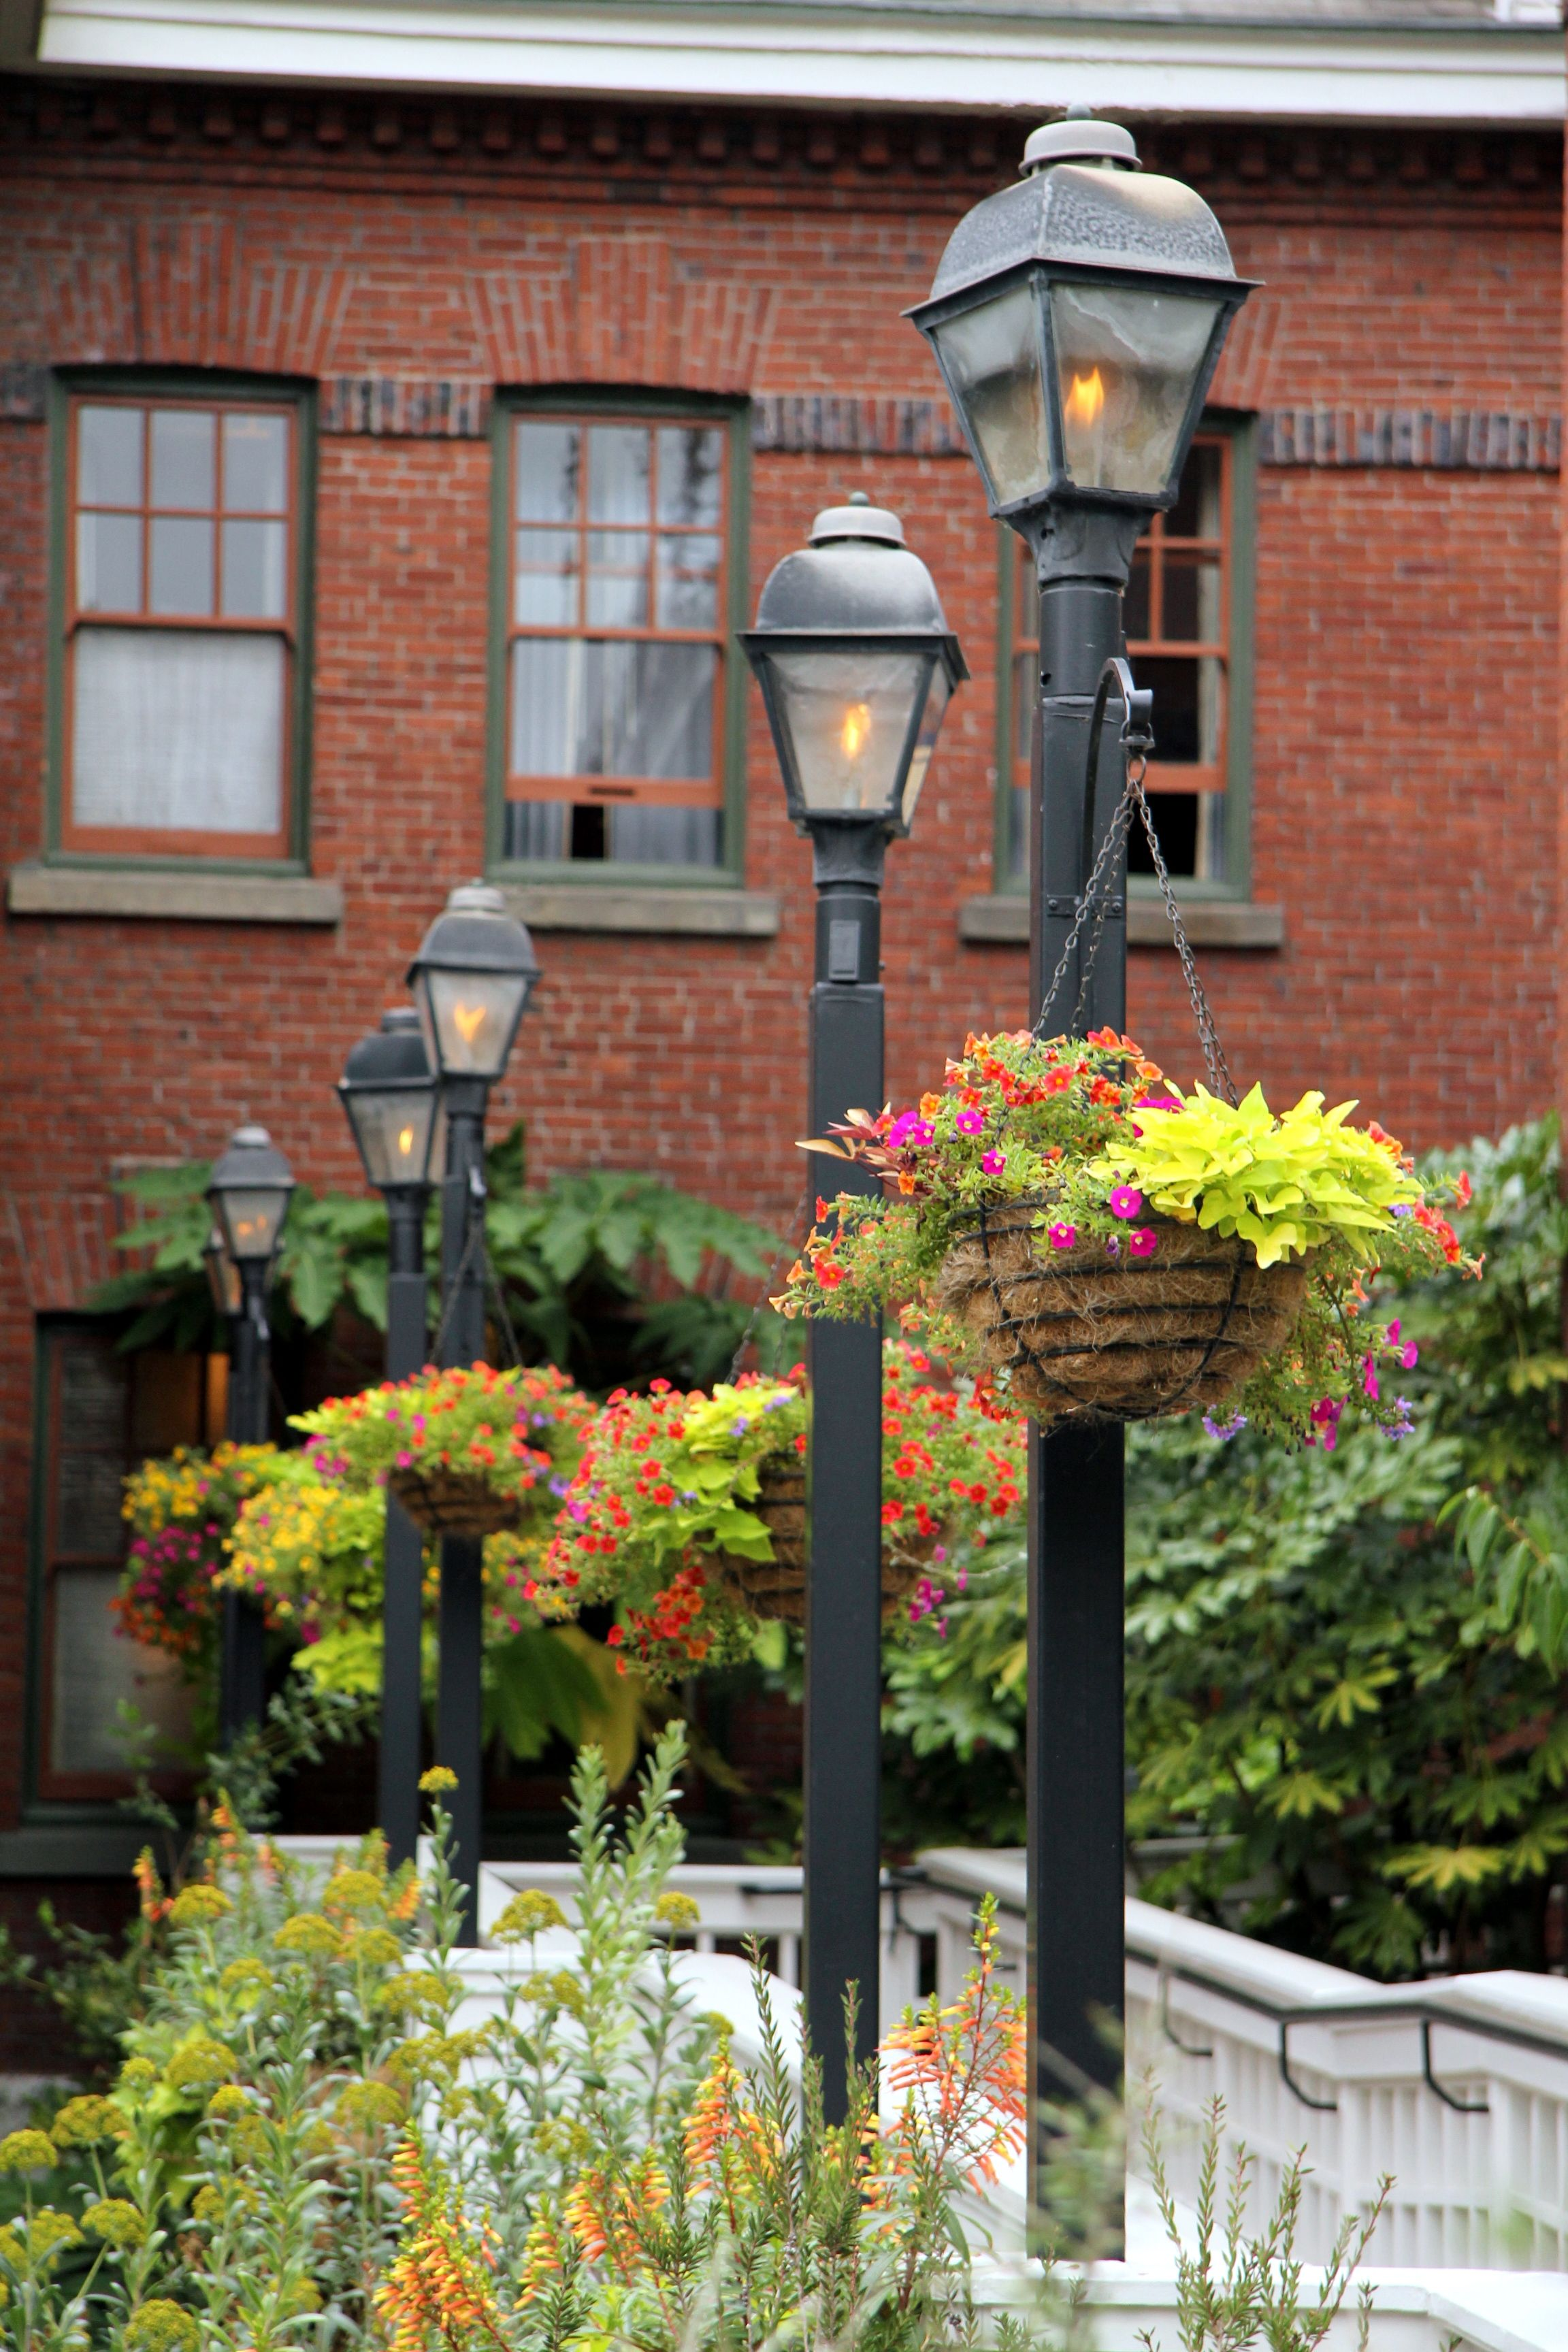 Lamp Posts with hanging baskets... oh yes!